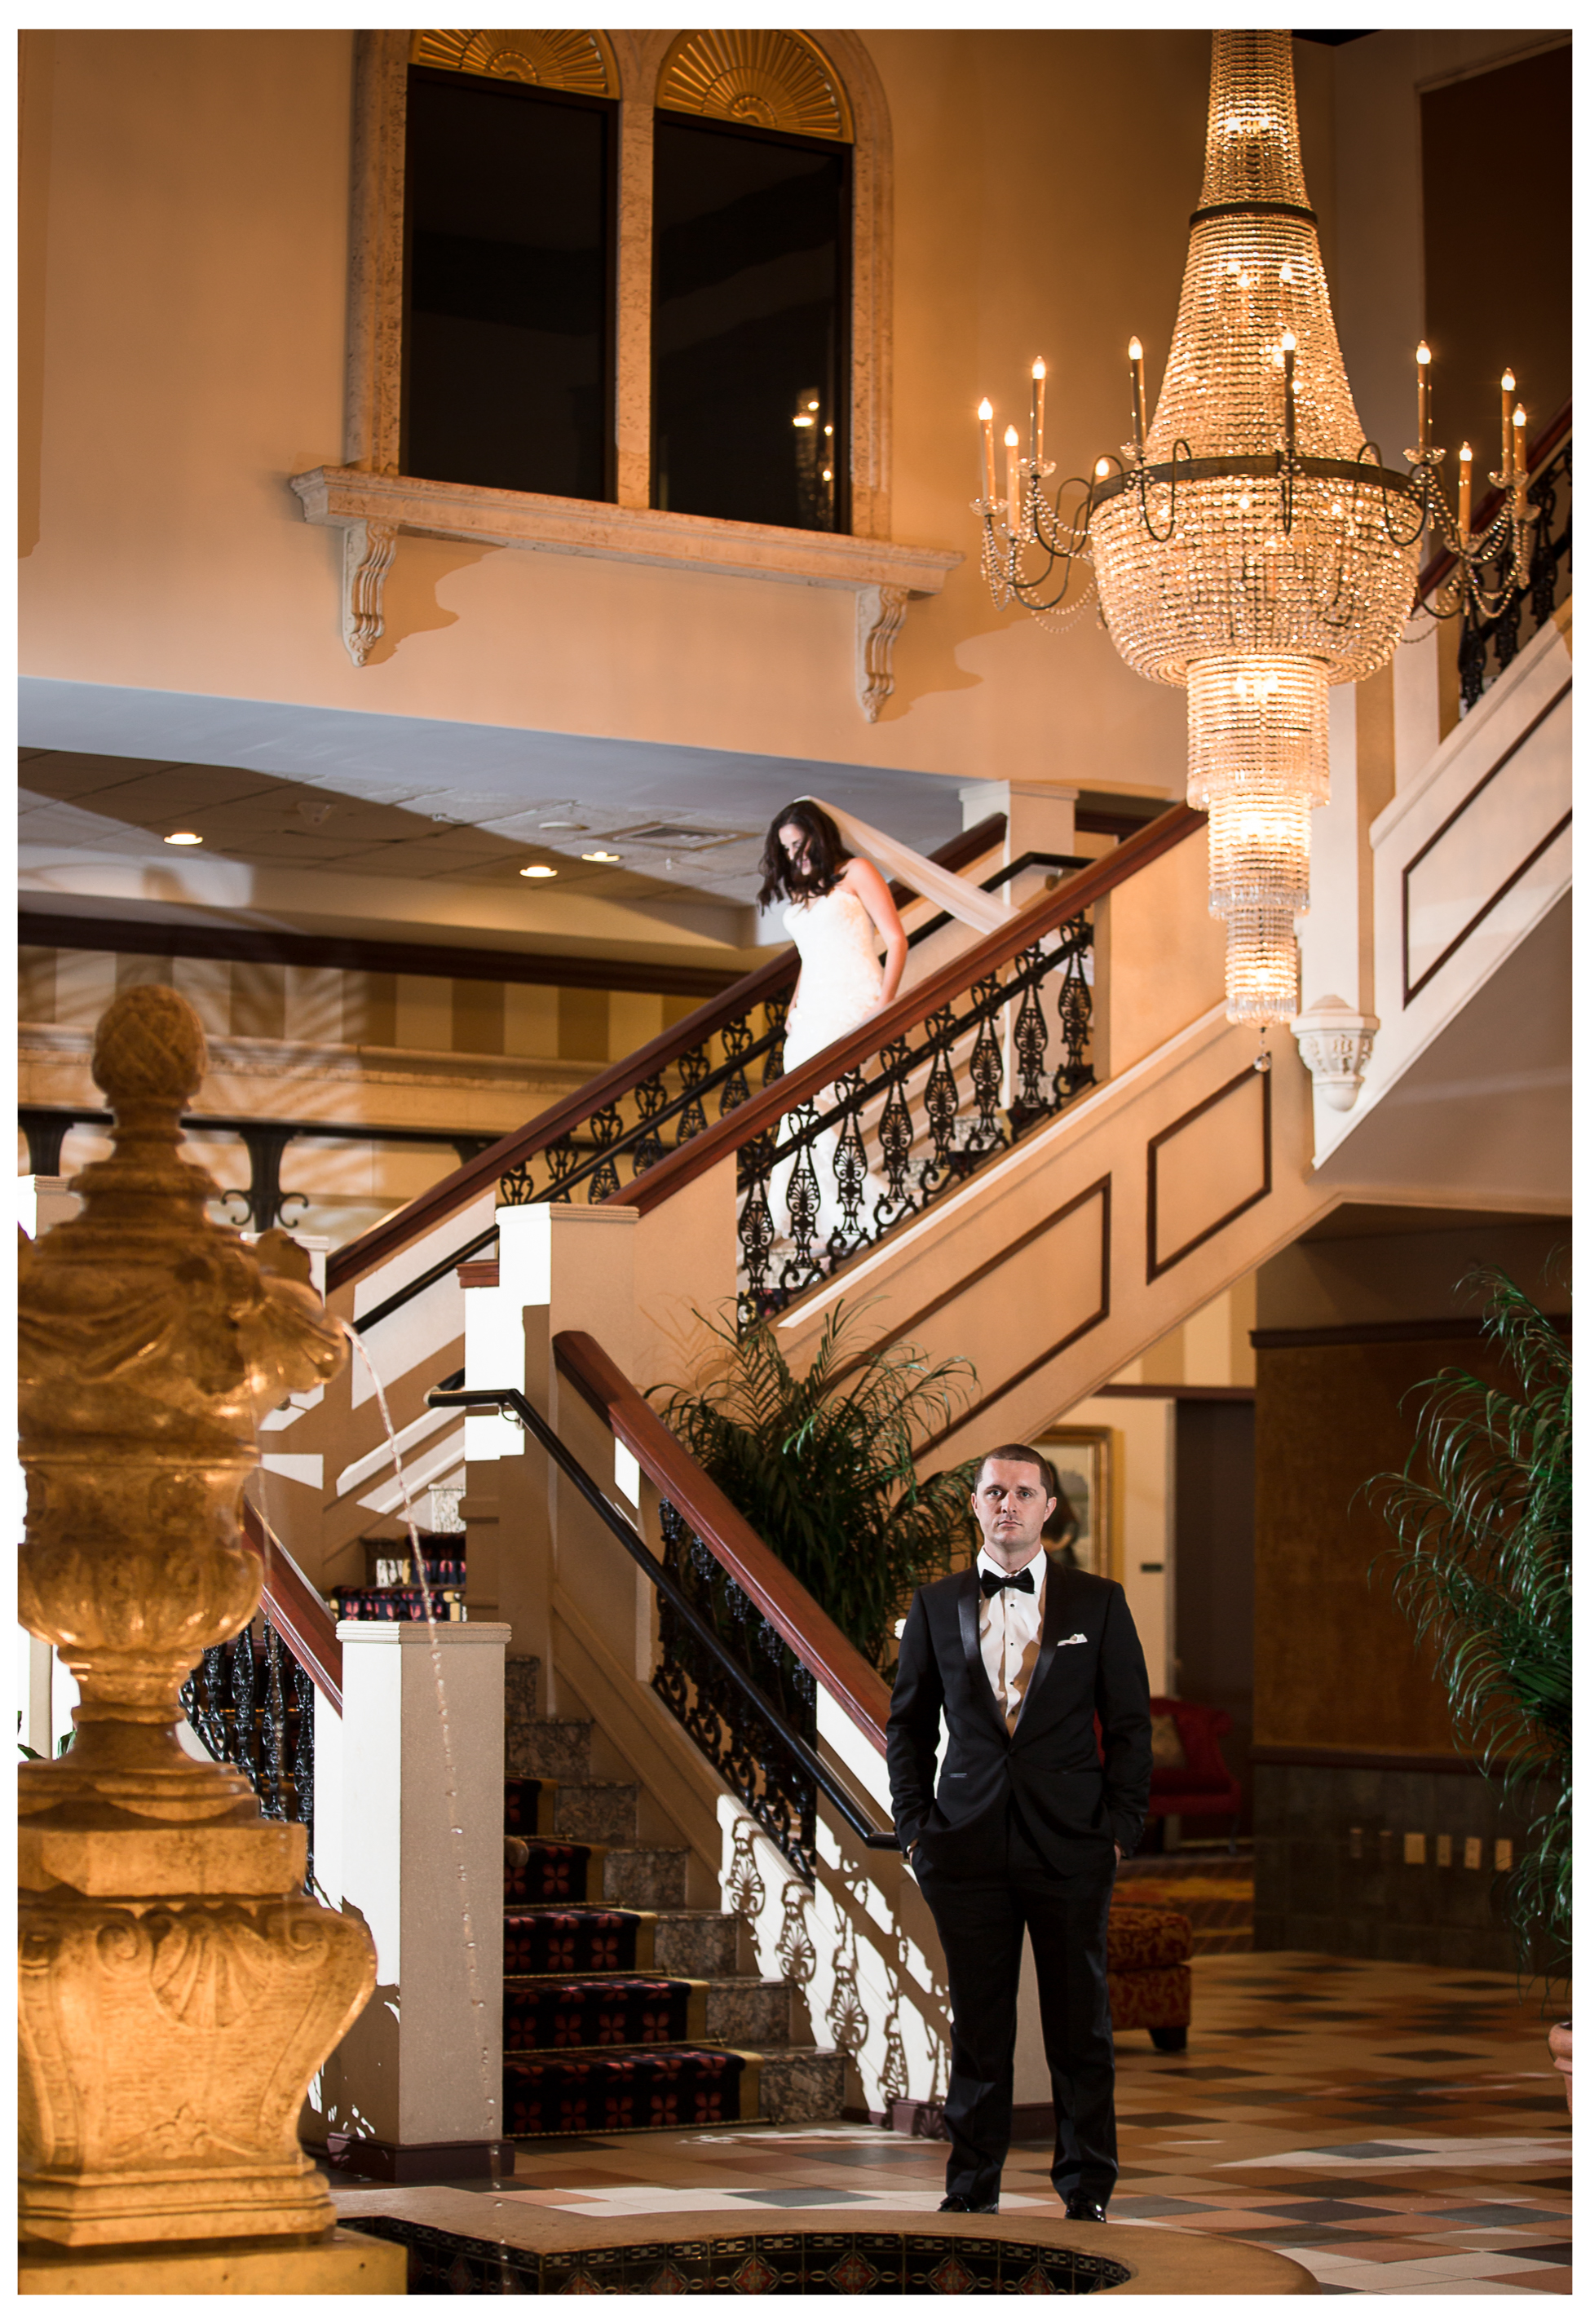 Fort-Lauderdale-Signature-grand-wedding-Paola-and-Max-married-8.jpg